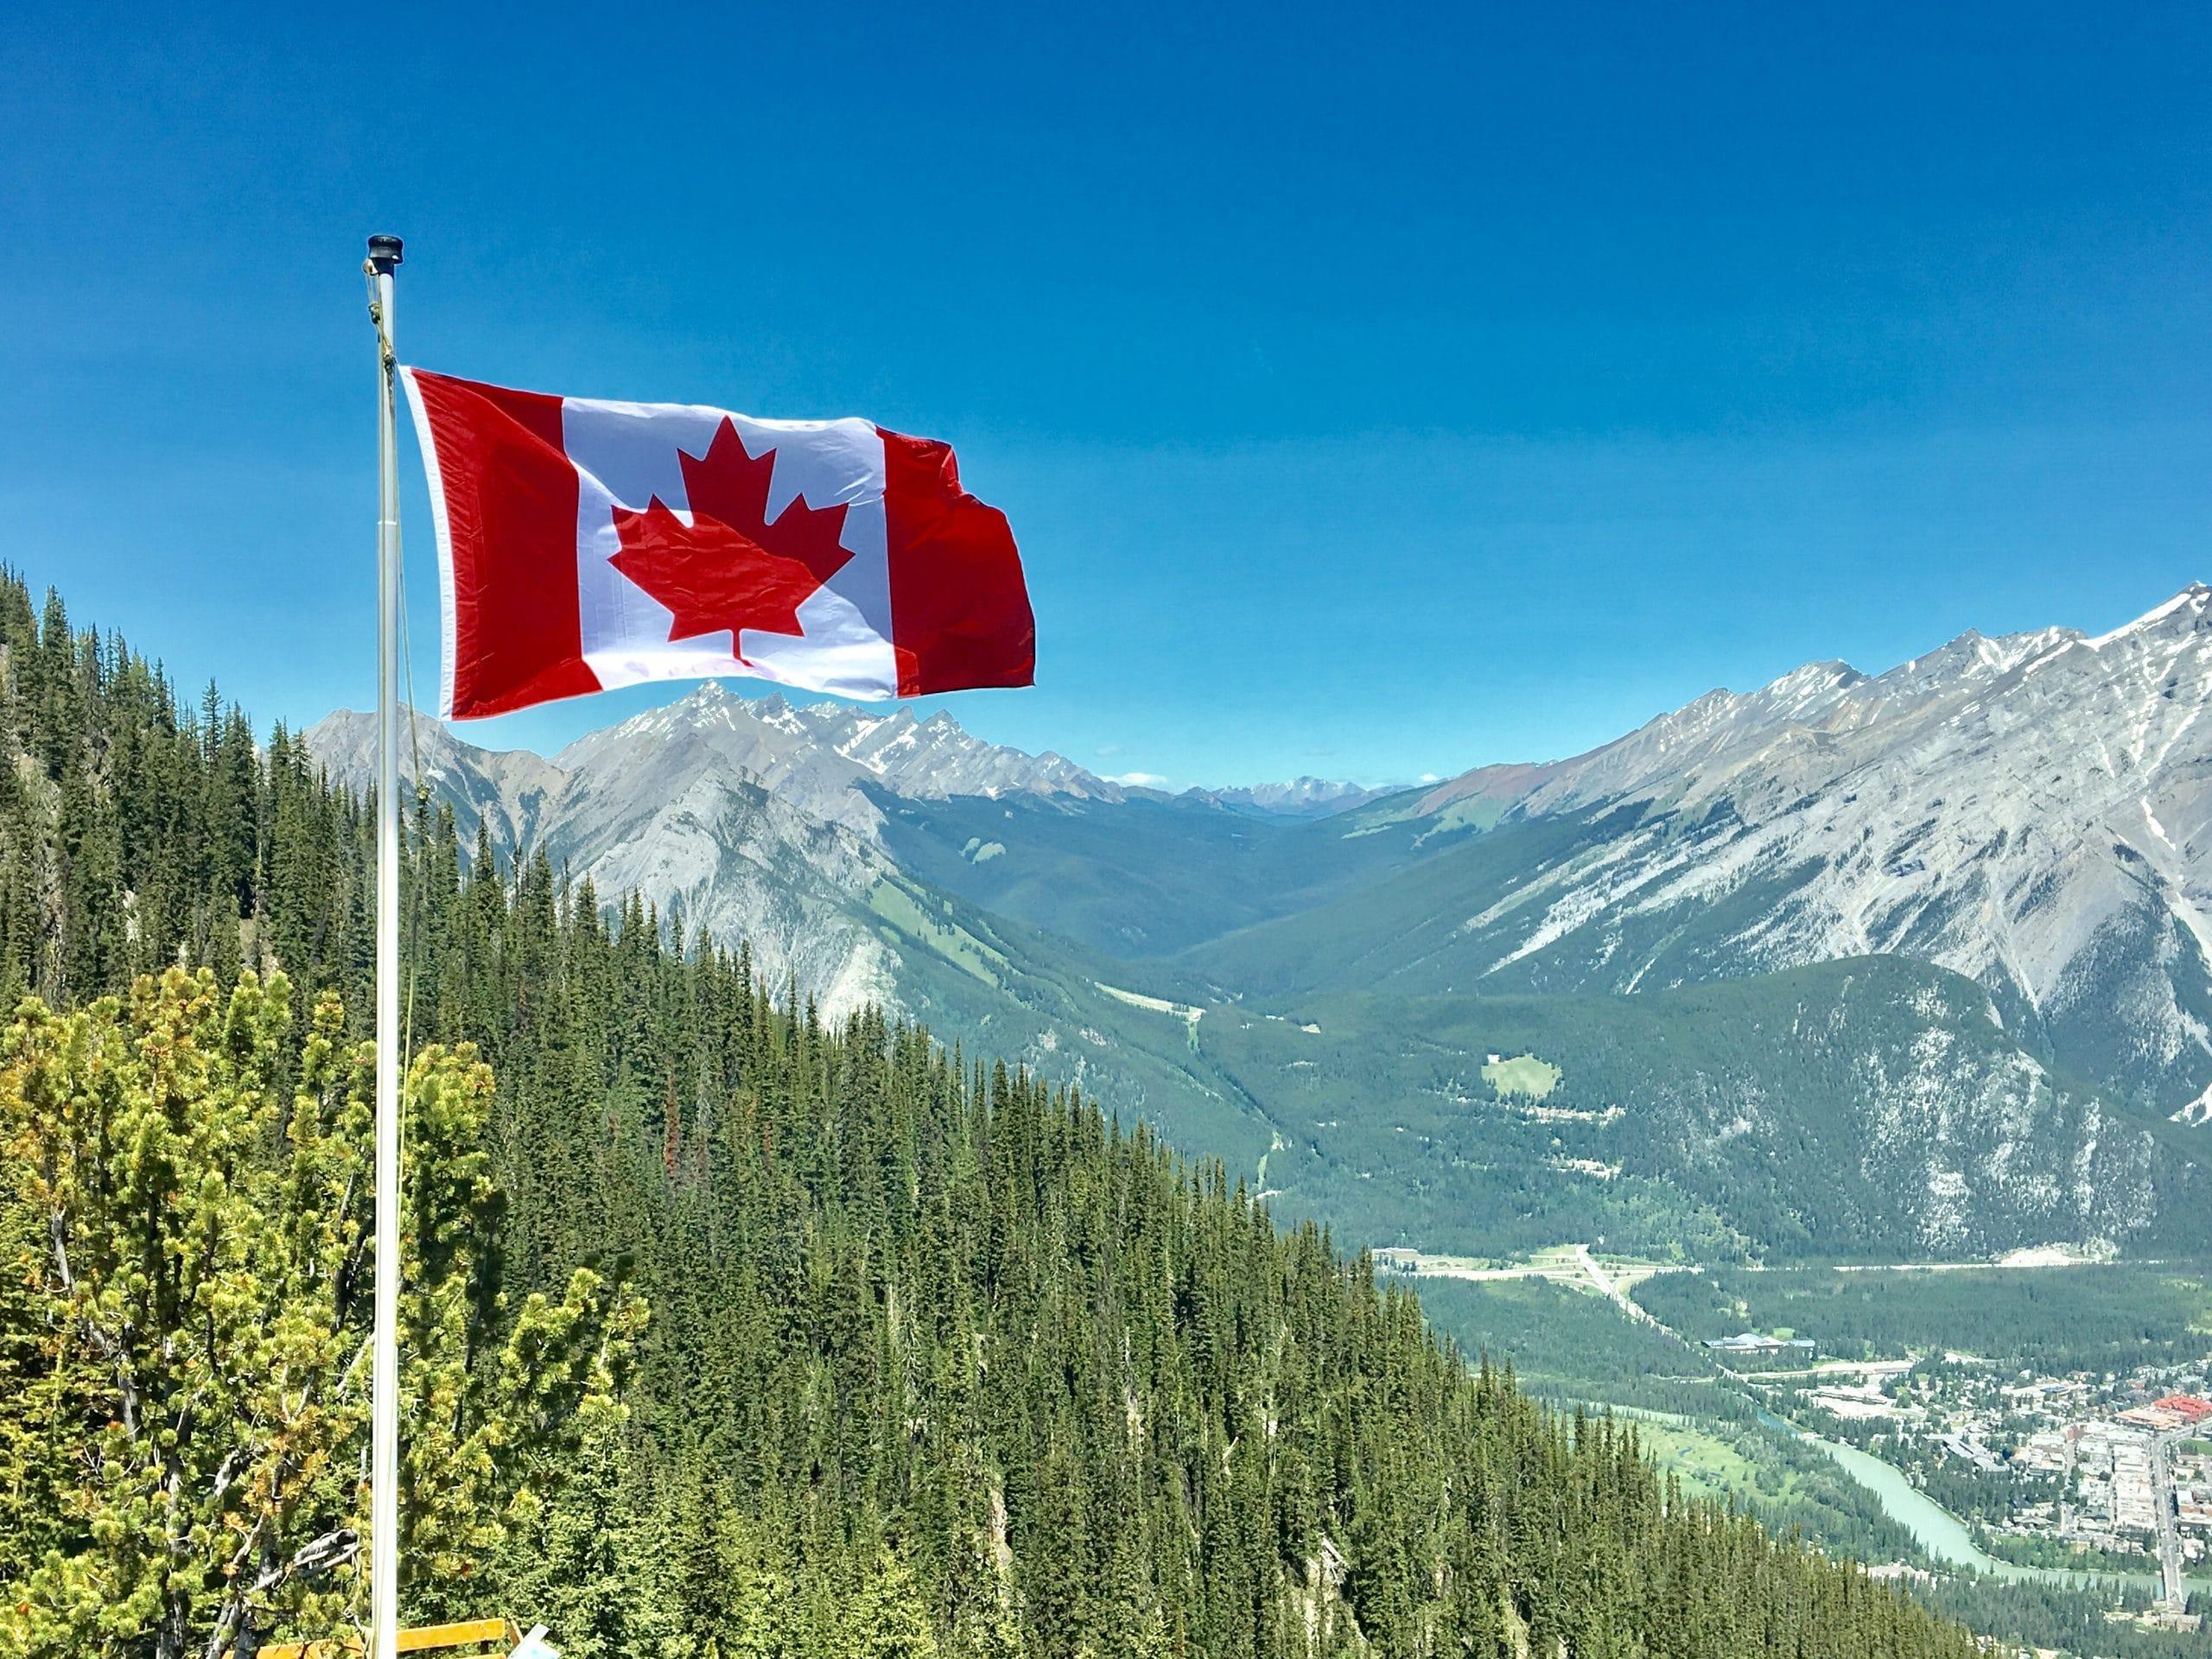 Canadian flag flies over bc mountains as Canada reopens it's borders